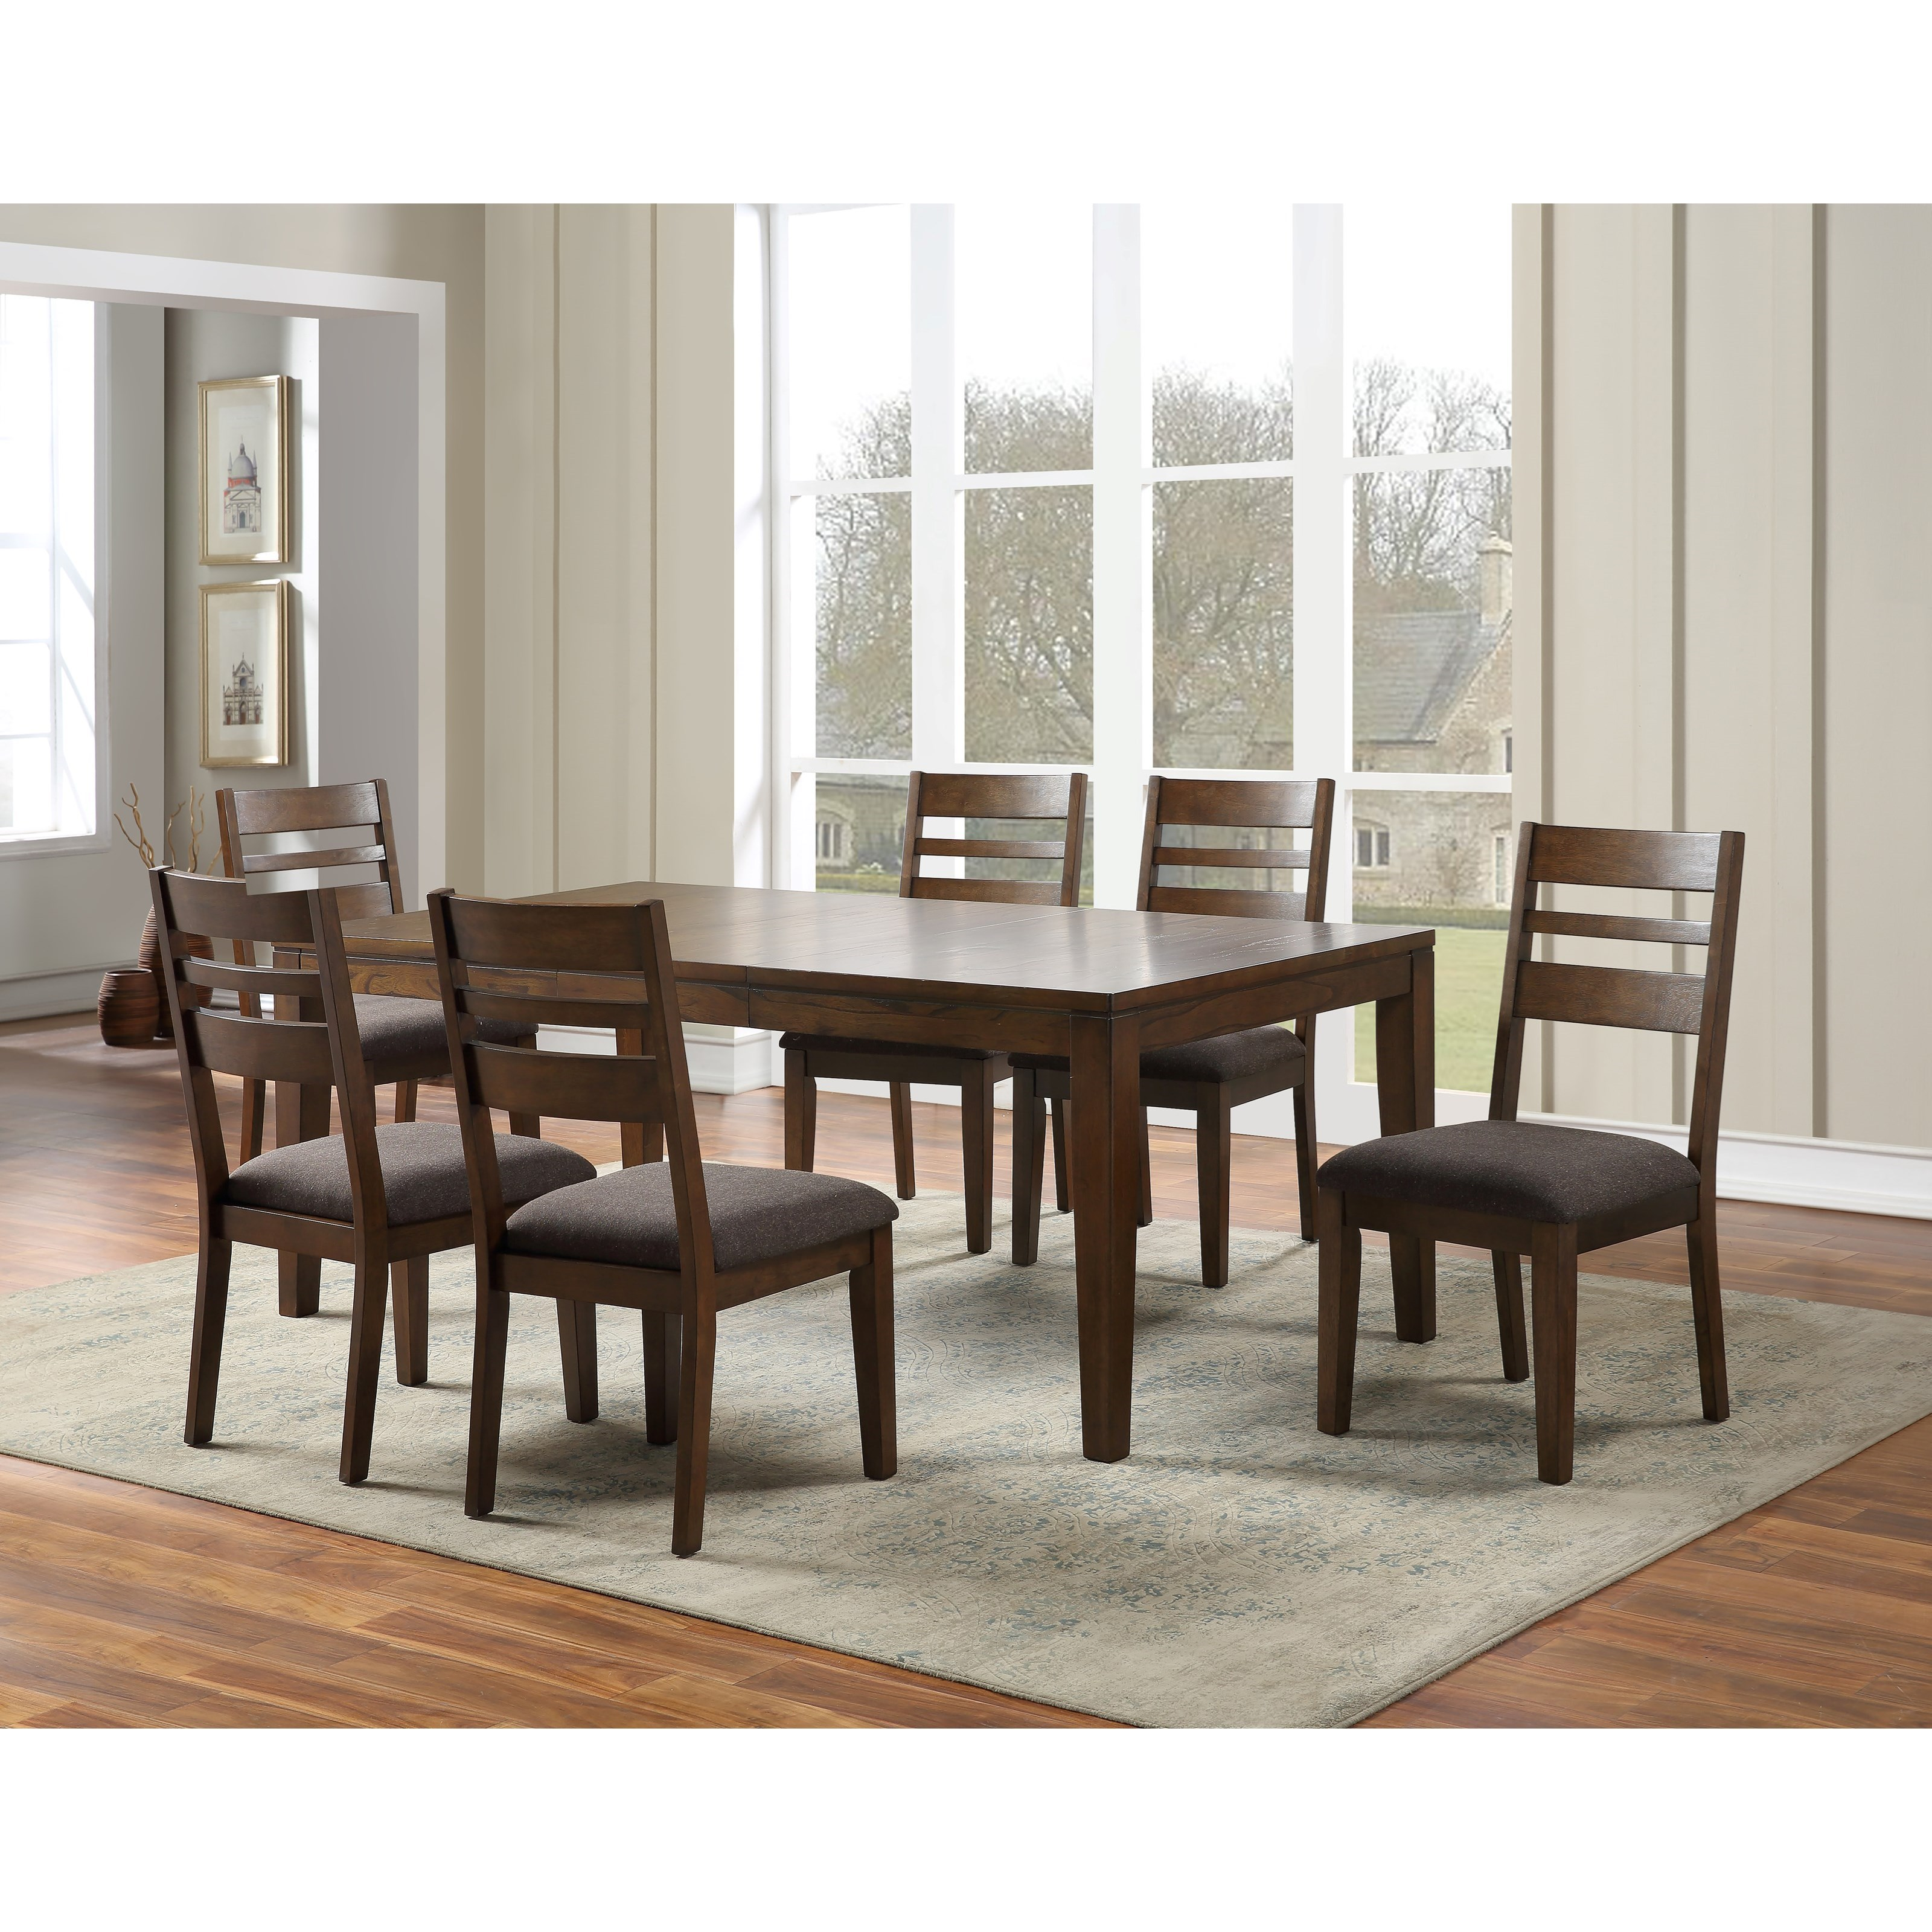 Stratford 7-Piece Table and Chair Set by Steve Silver at Walker's Furniture